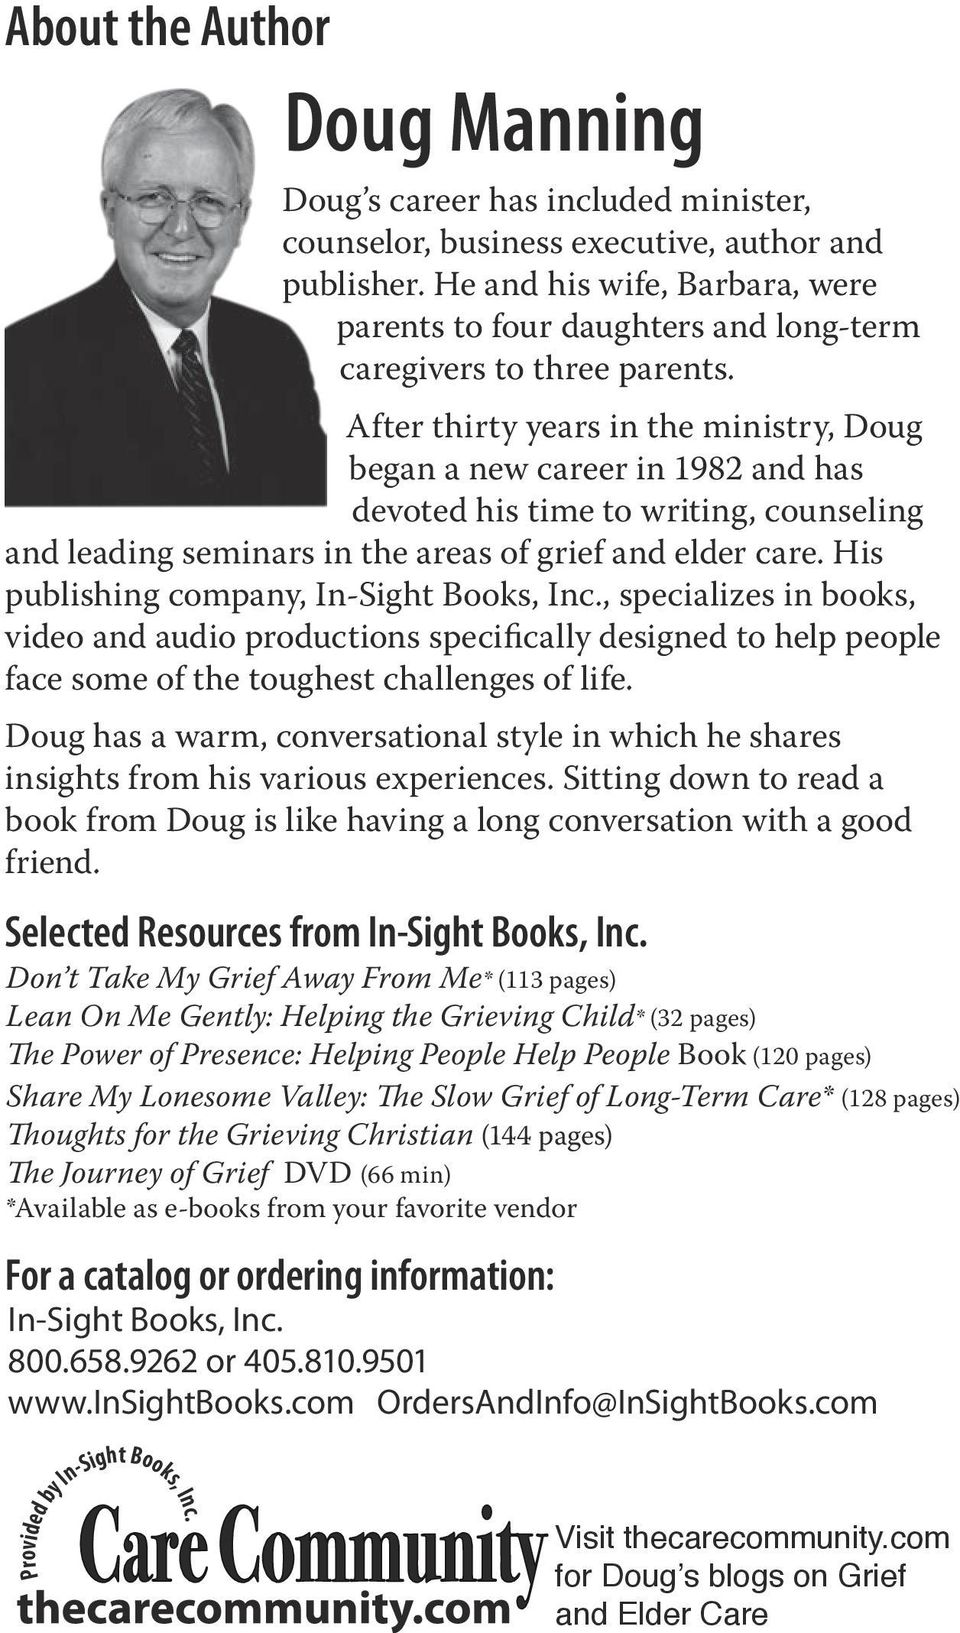 After thirty years in the ministry, Doug began a new career in 1982 and has devoted his time to writing, counseling and leading seminars in the areas of grief and elder care.